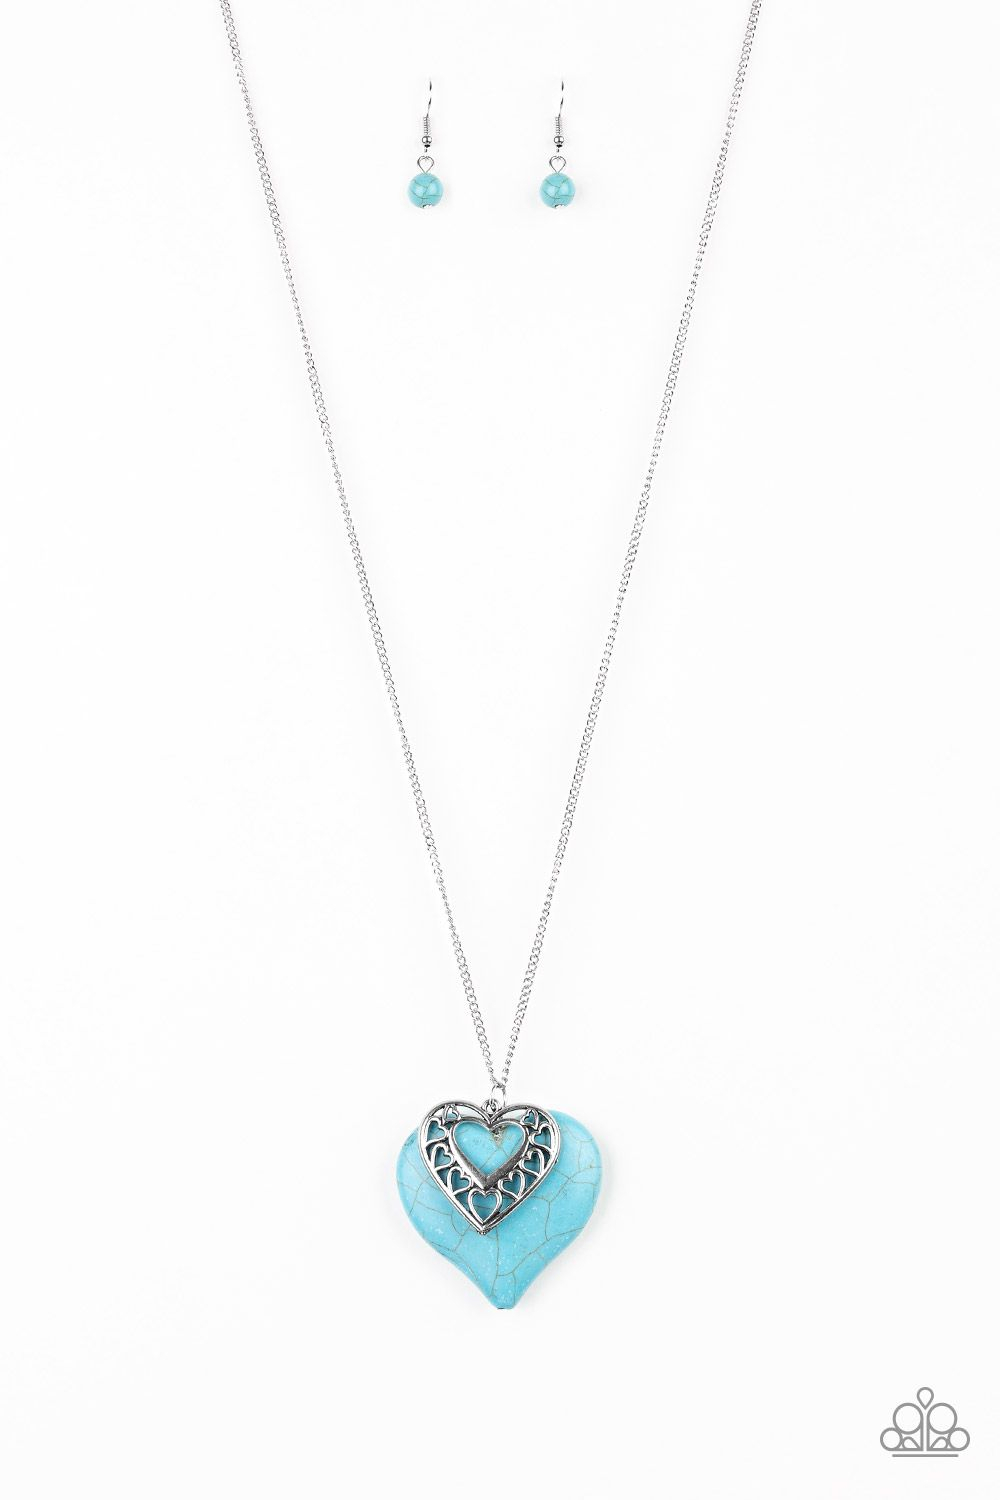 Chiseled Into A Flirtatious Heart Shape, A Refreshing Turquoise For Most Recent Ornate Hearts Tassel Necklaces (View 4 of 25)